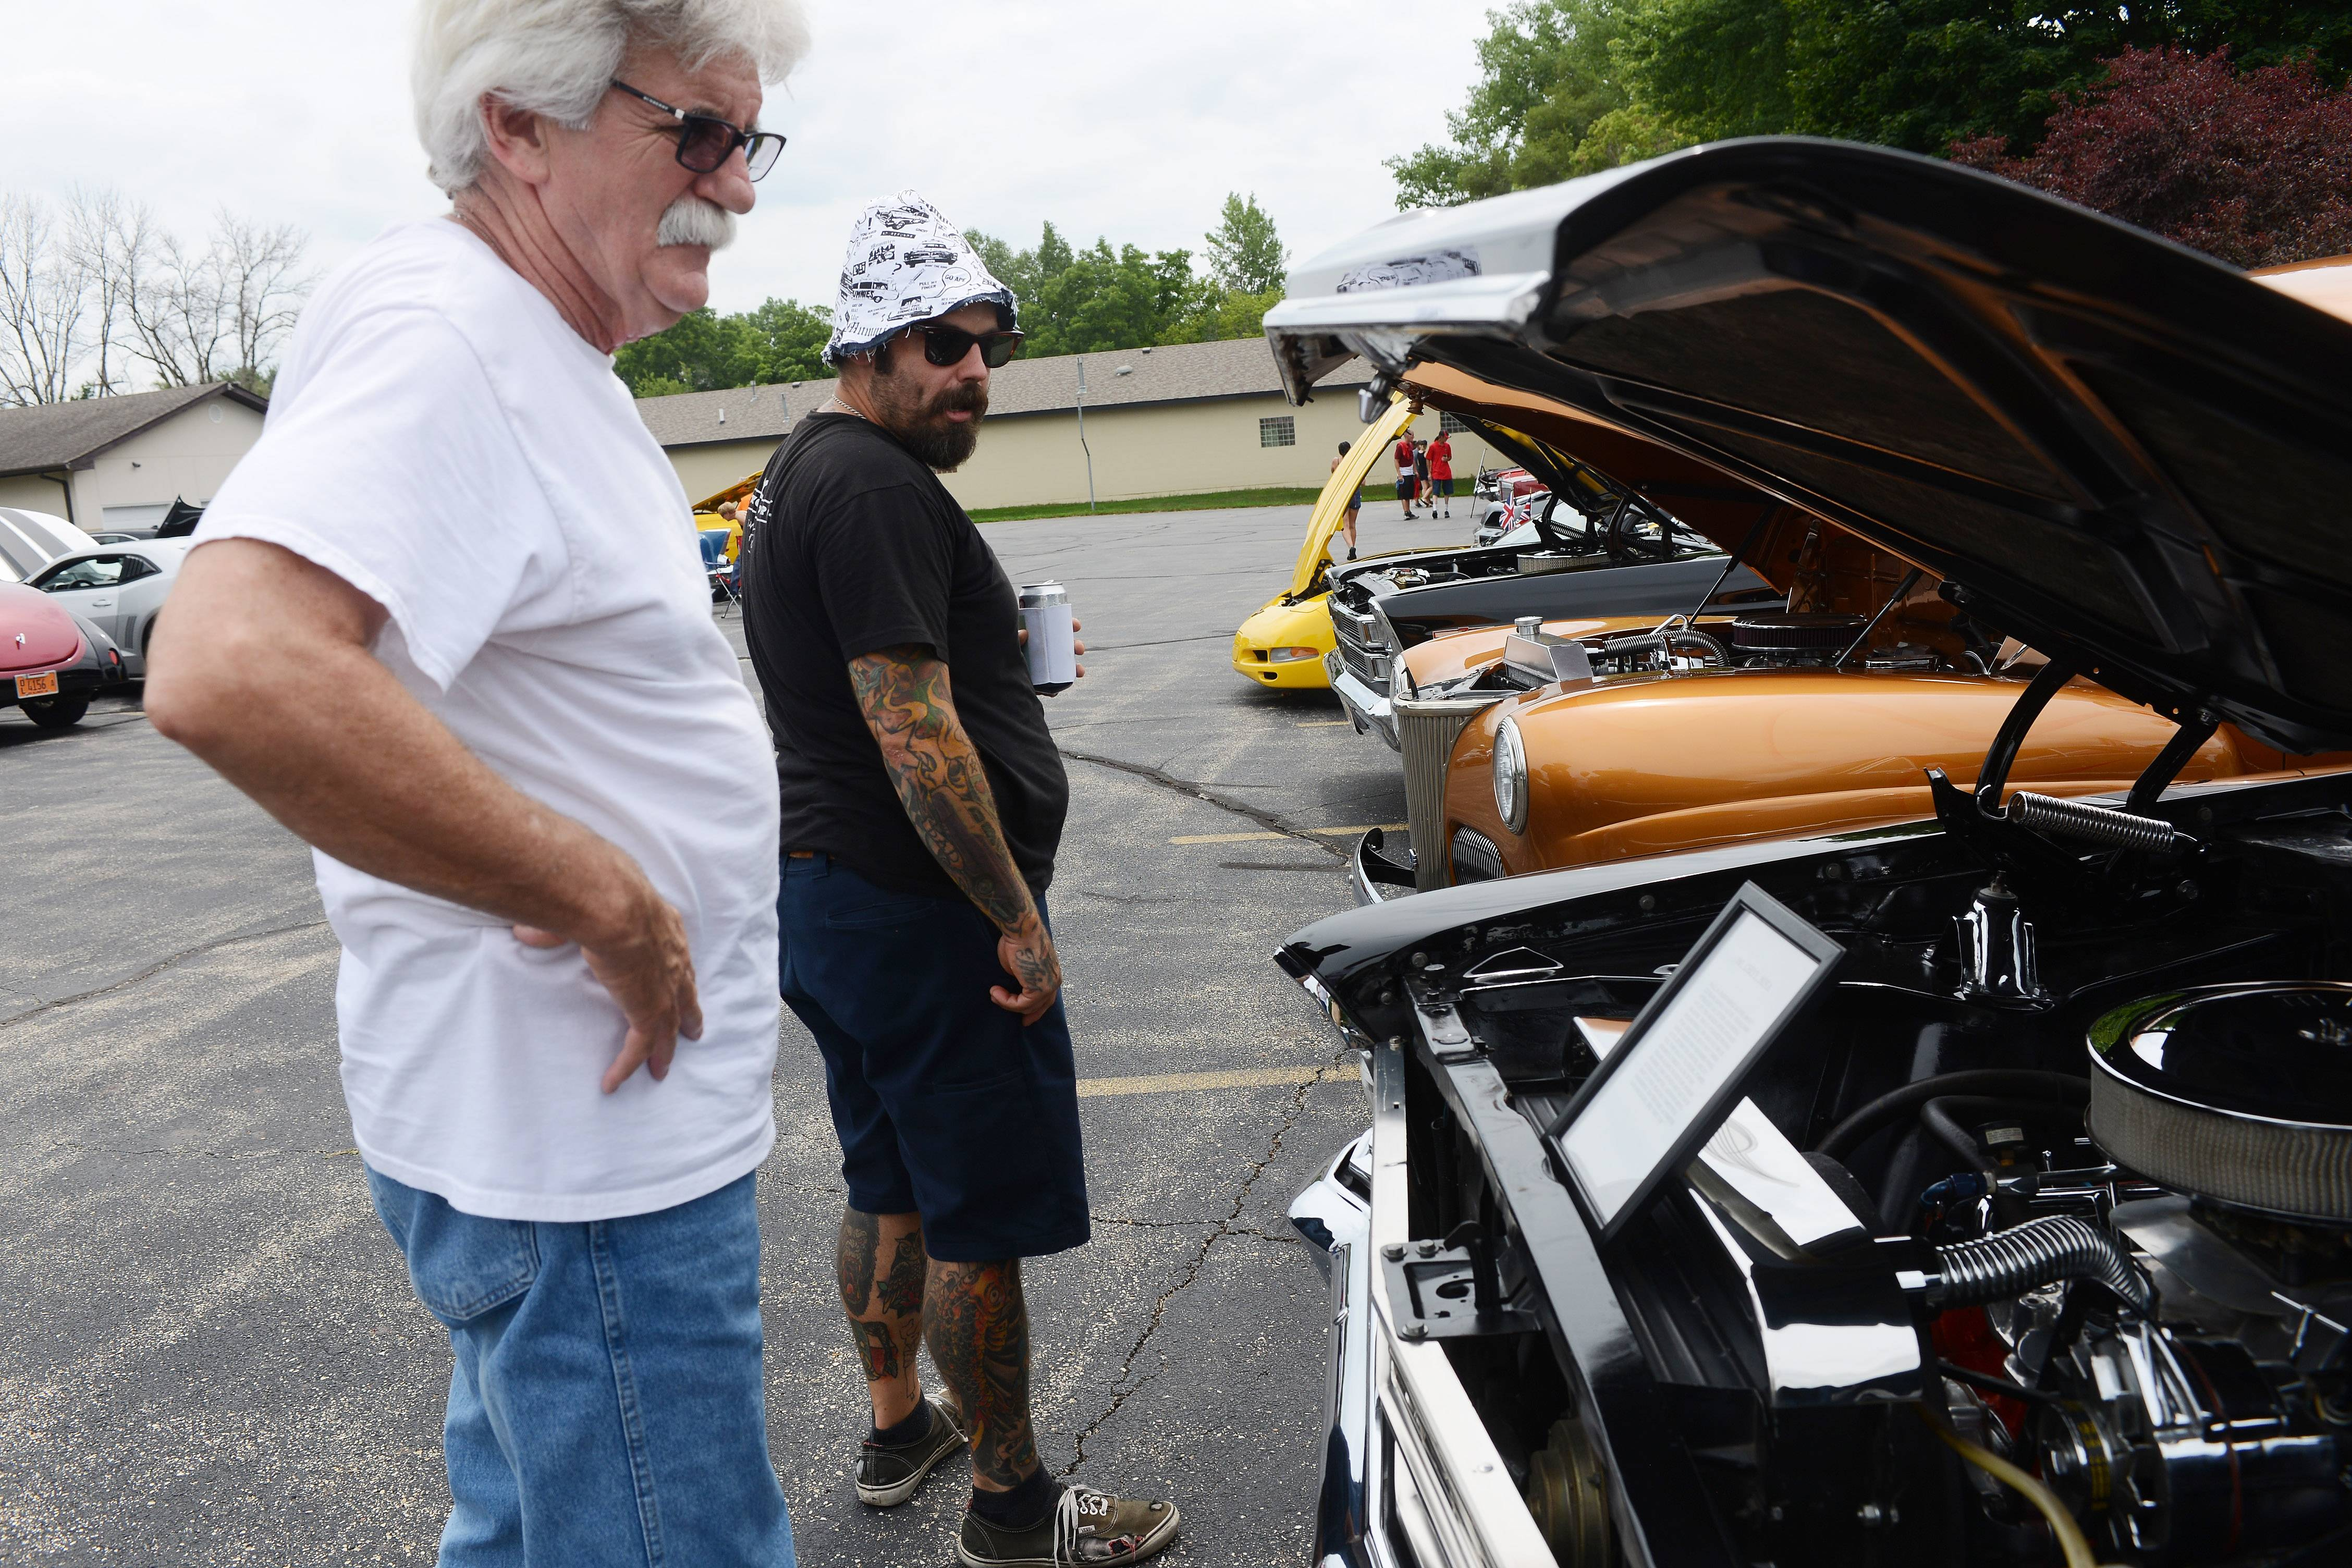 Donald Saville of Island Lake, left, and his son, Chad Saville of Hoffman Estates, view cars displayed during the Lakefest car show in Island Lake Saturday.